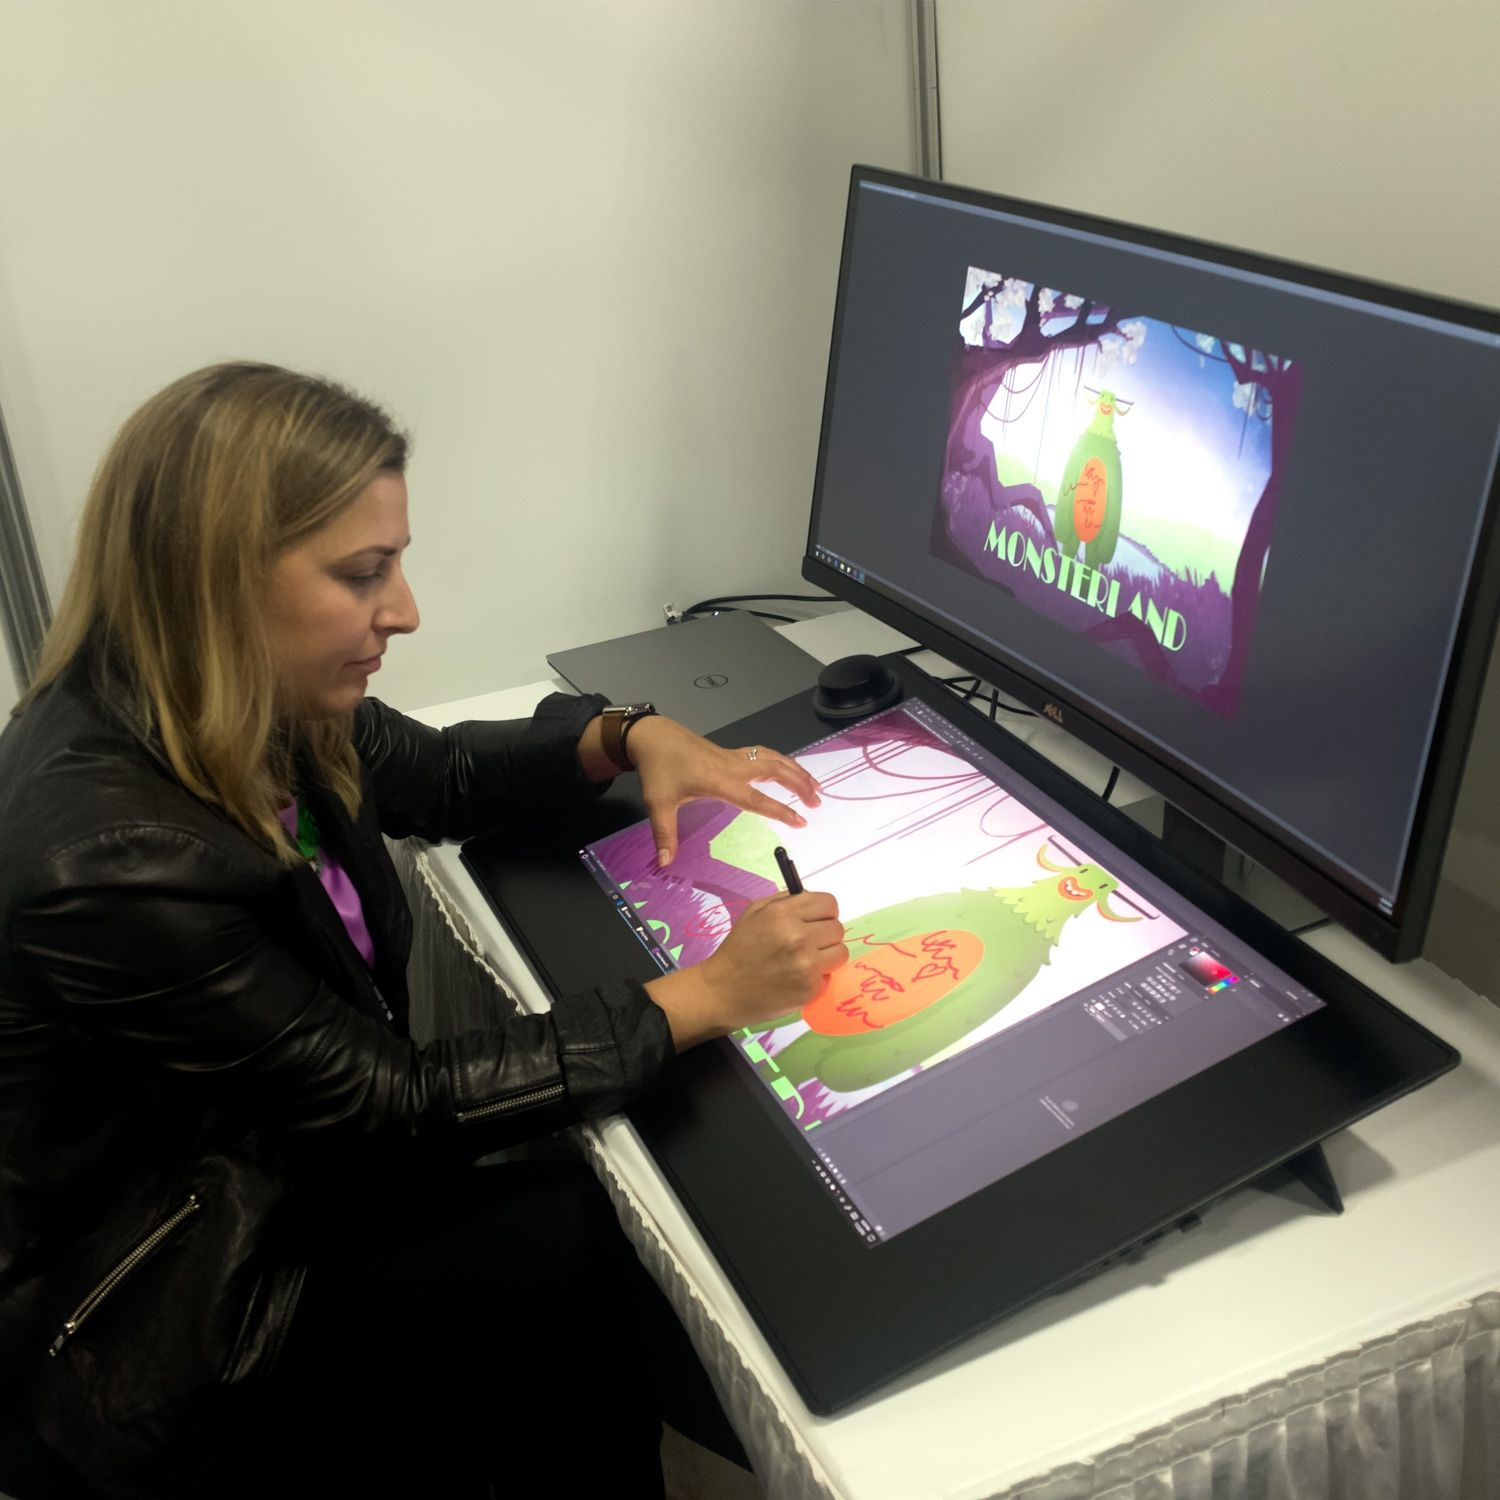 Dell's 27-inch screen you can draw on in like a cheaper